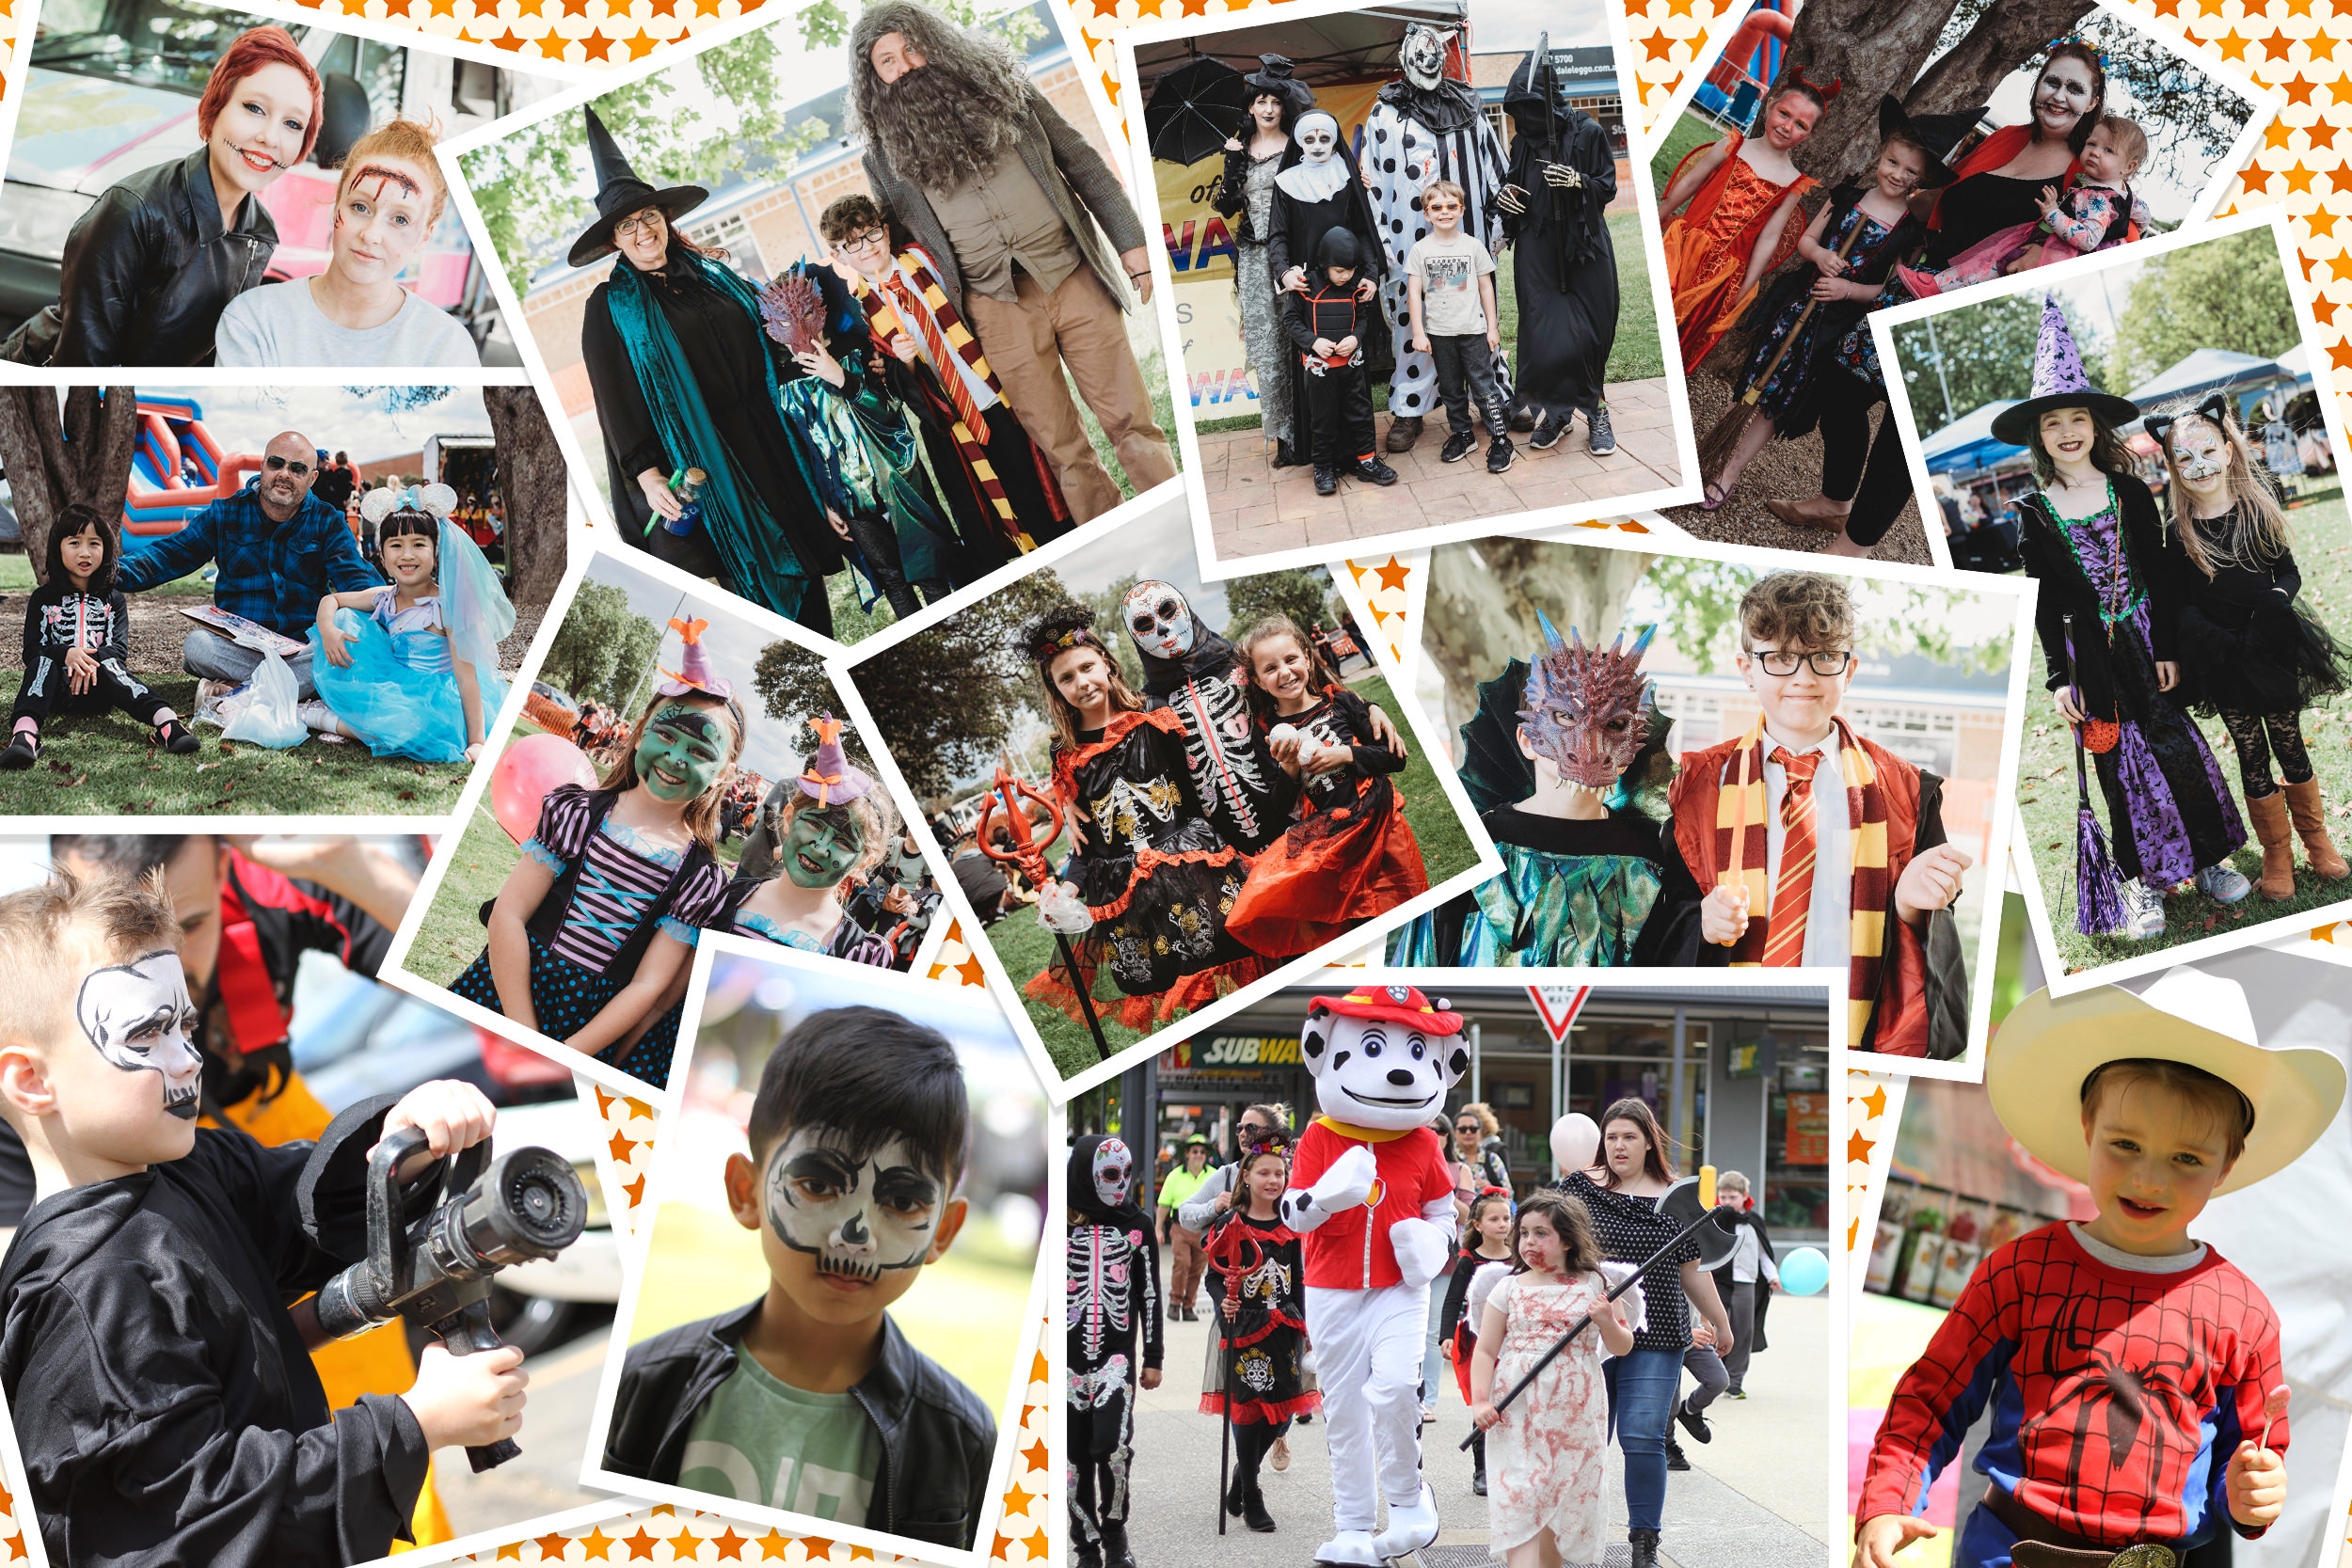 Scenes from previous Marsh Monster Mash Events